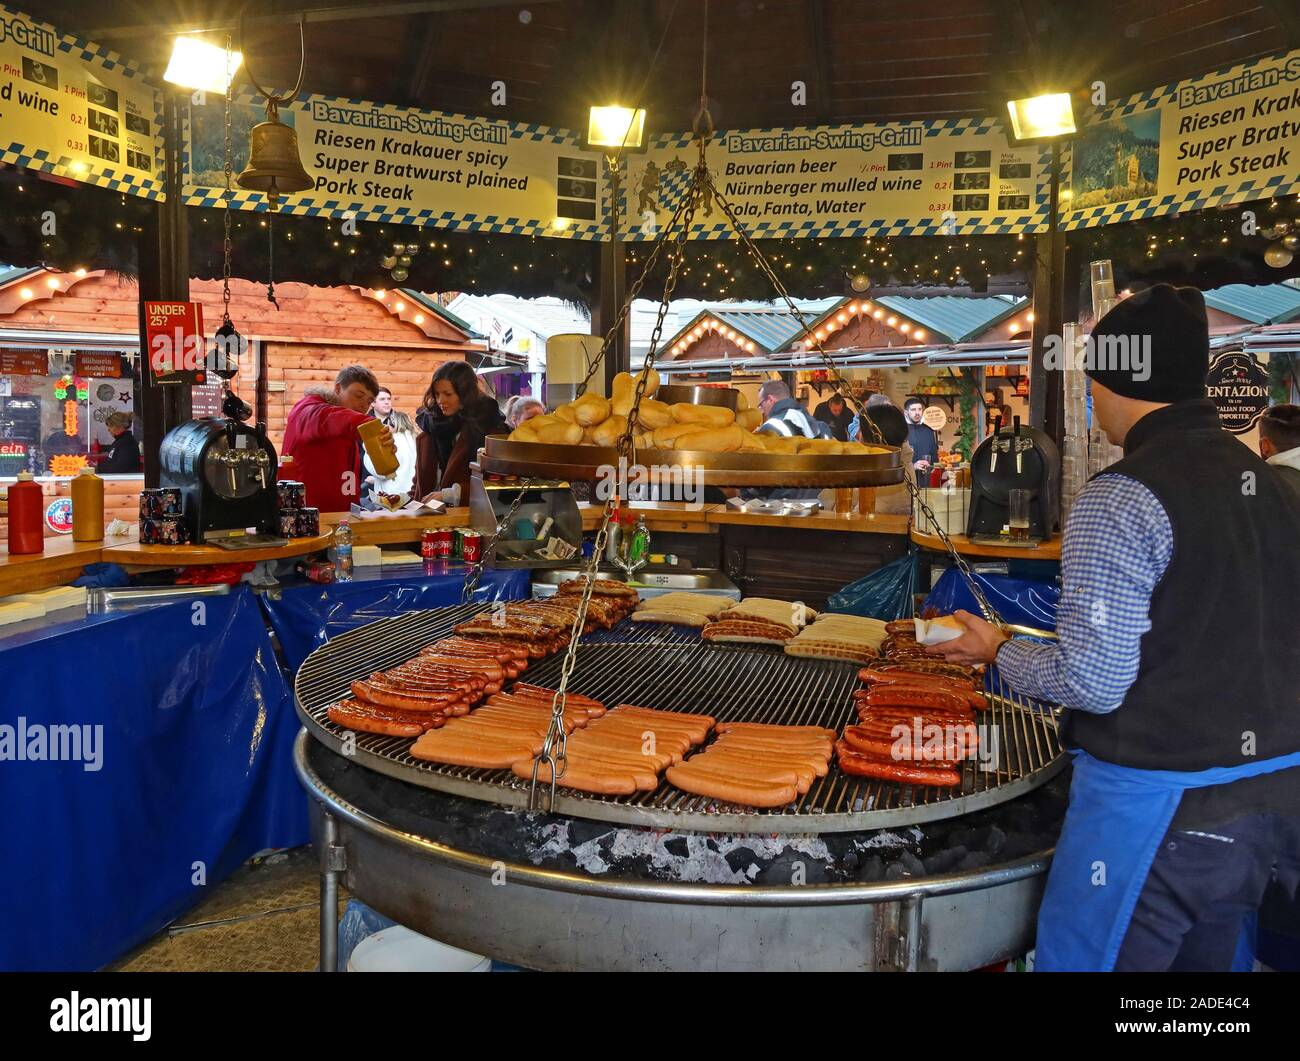 Bavarian Swing Grill,sausages,Wurst,bratwurst,currywurst,grilling over charcoals,German market,Christmas market,Albert Square,Manchester,England,UK Stock Photo